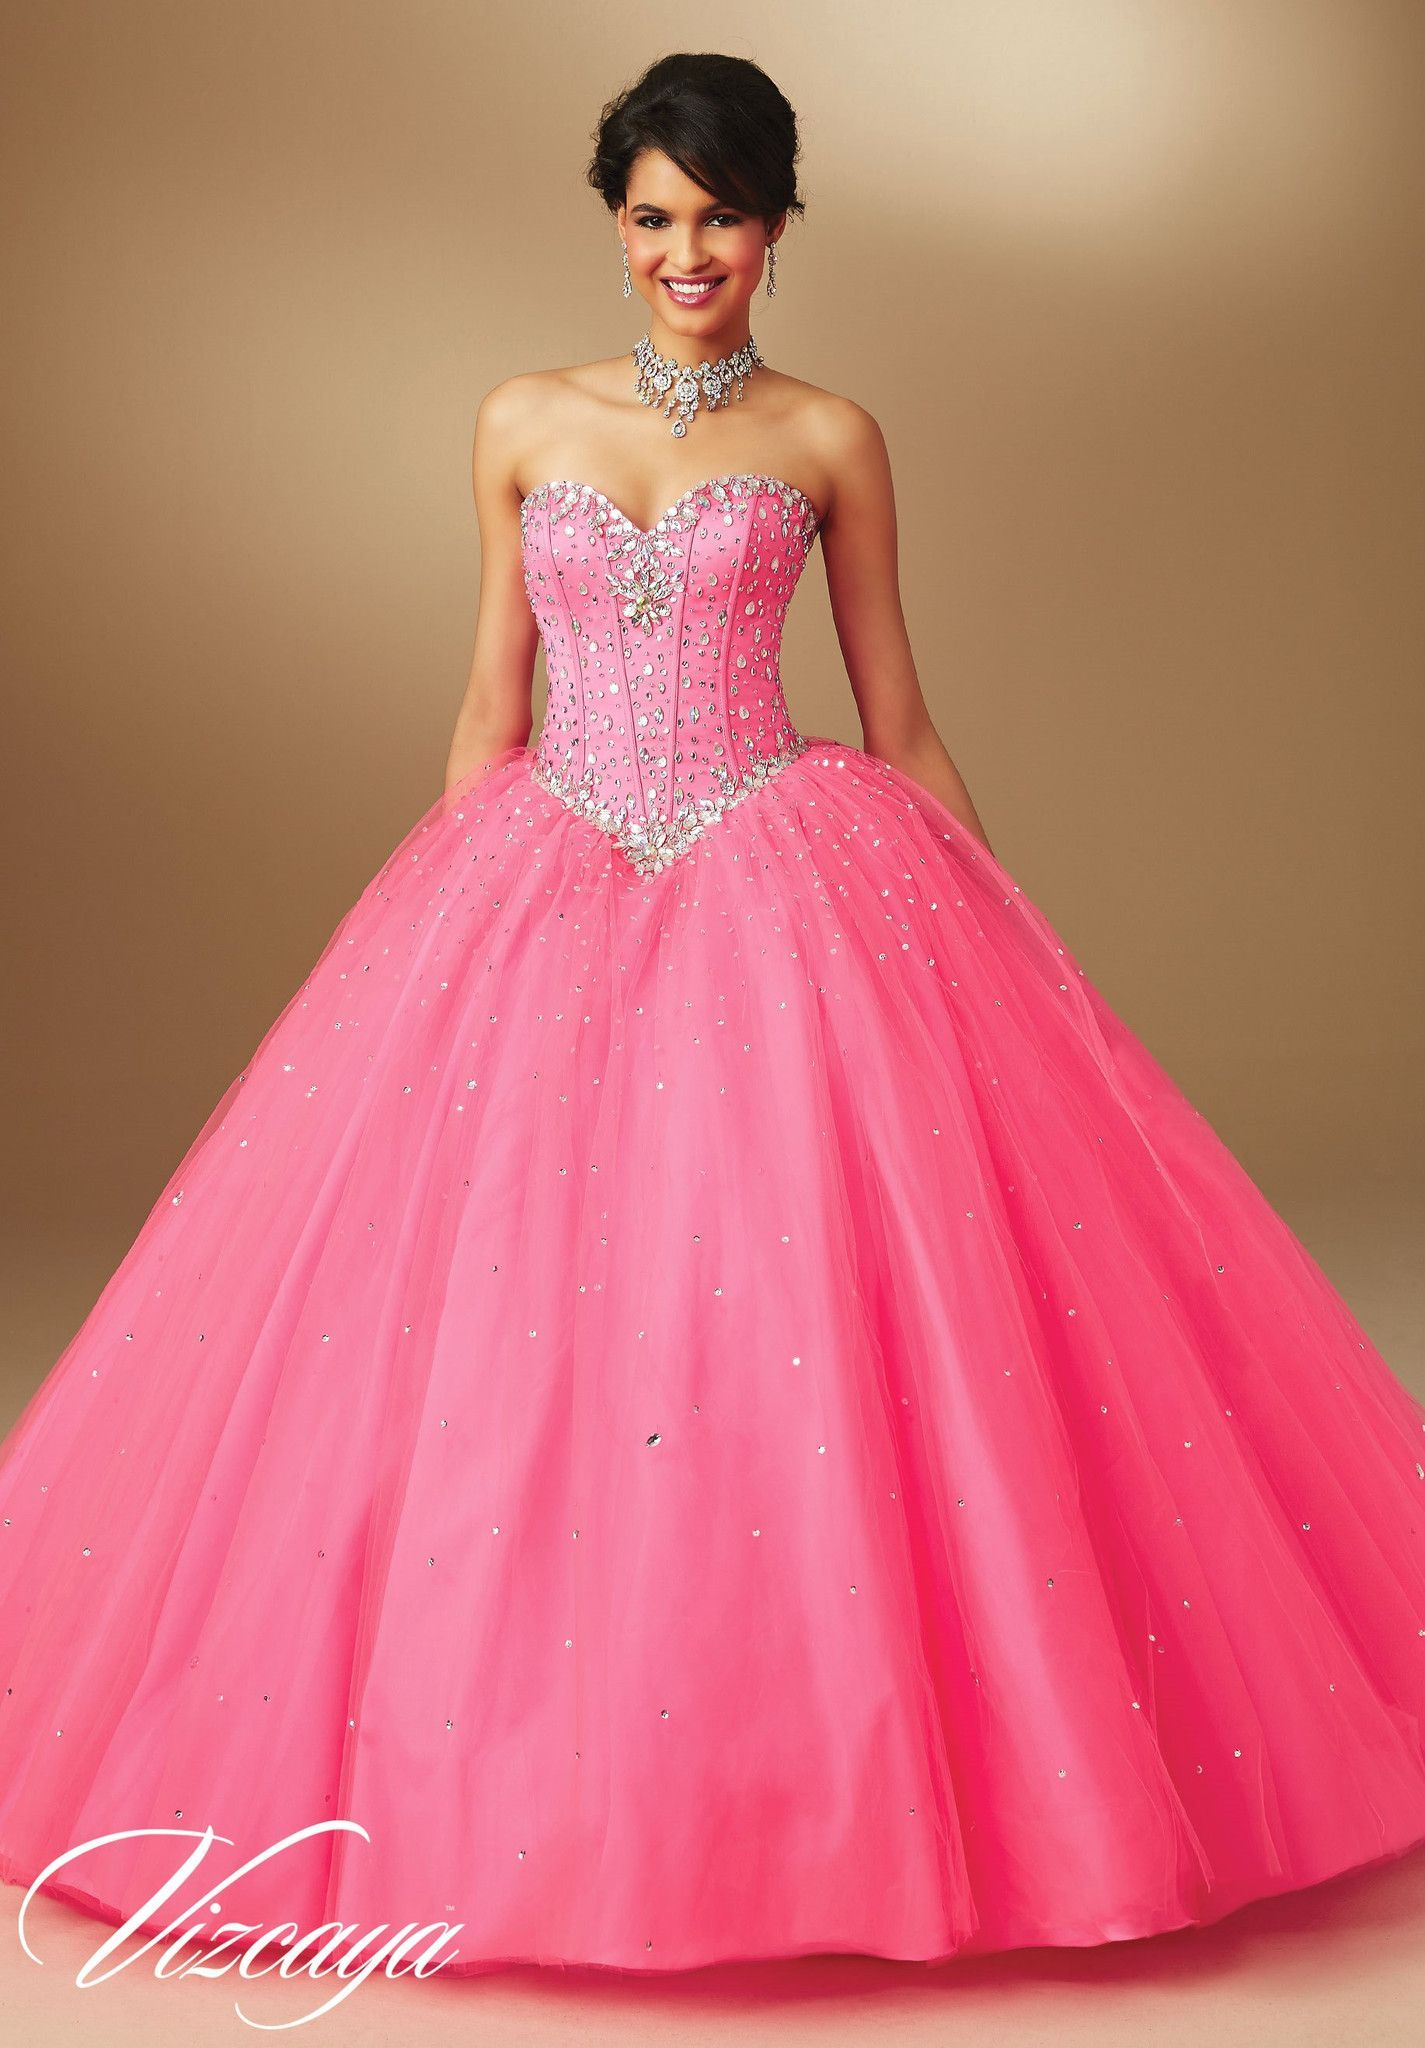 Mori Lee Quinceanera Dress 89017 | 15 años, Vestiditos y Años